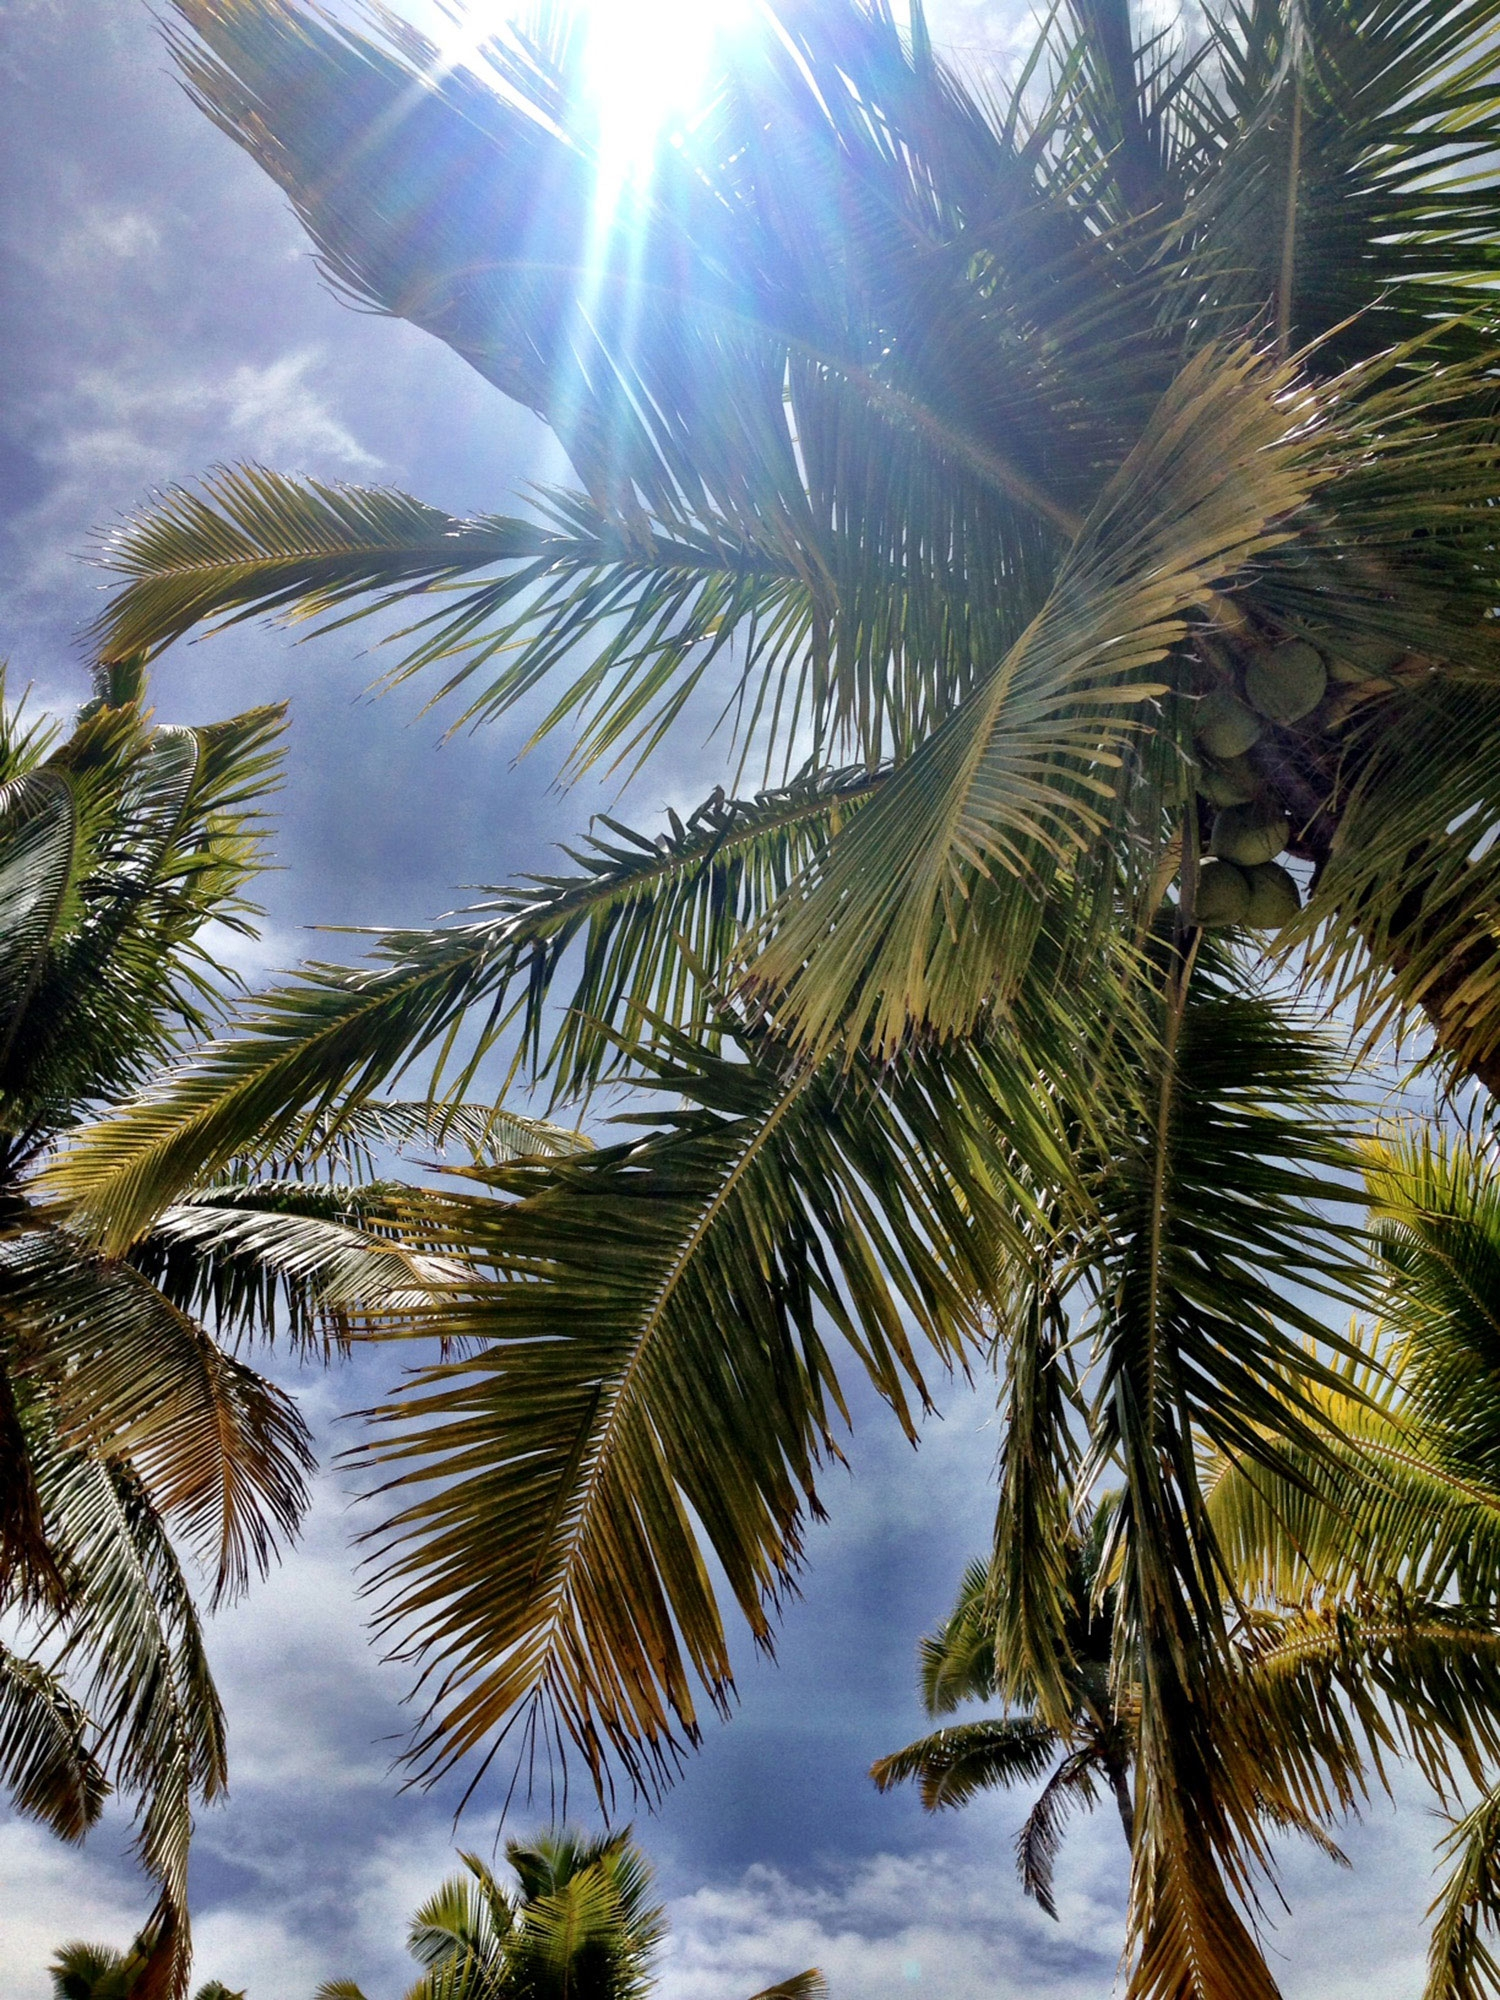 Looking up past palm fronds to the bright sun and blue sky